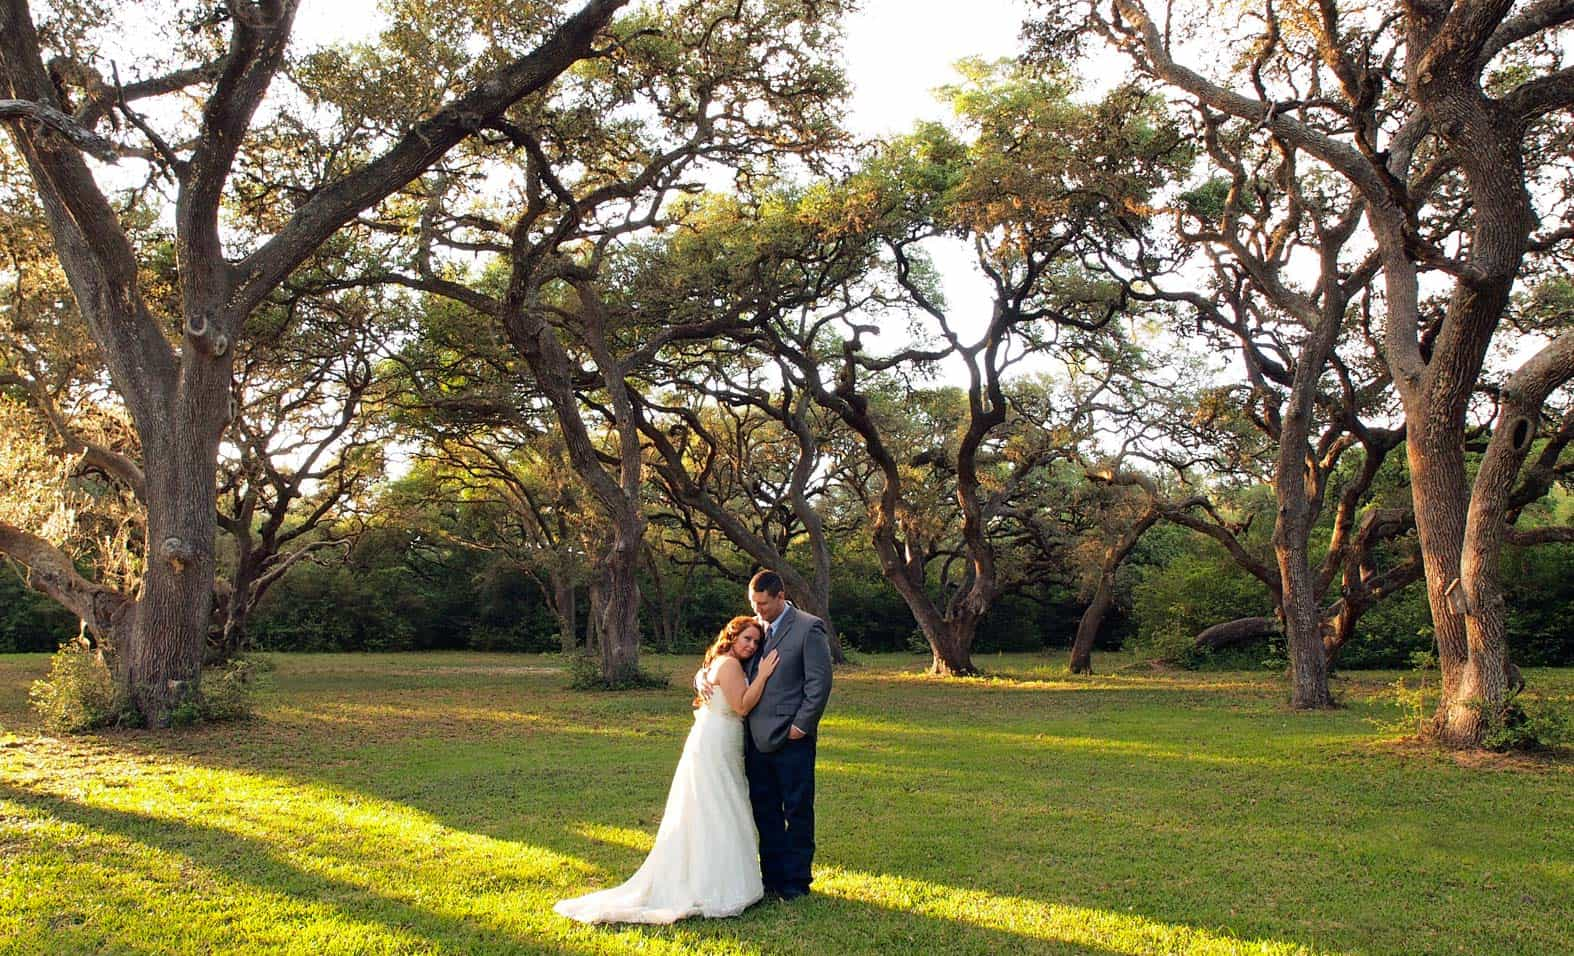 A wedding couple standing under a grove of large oaks